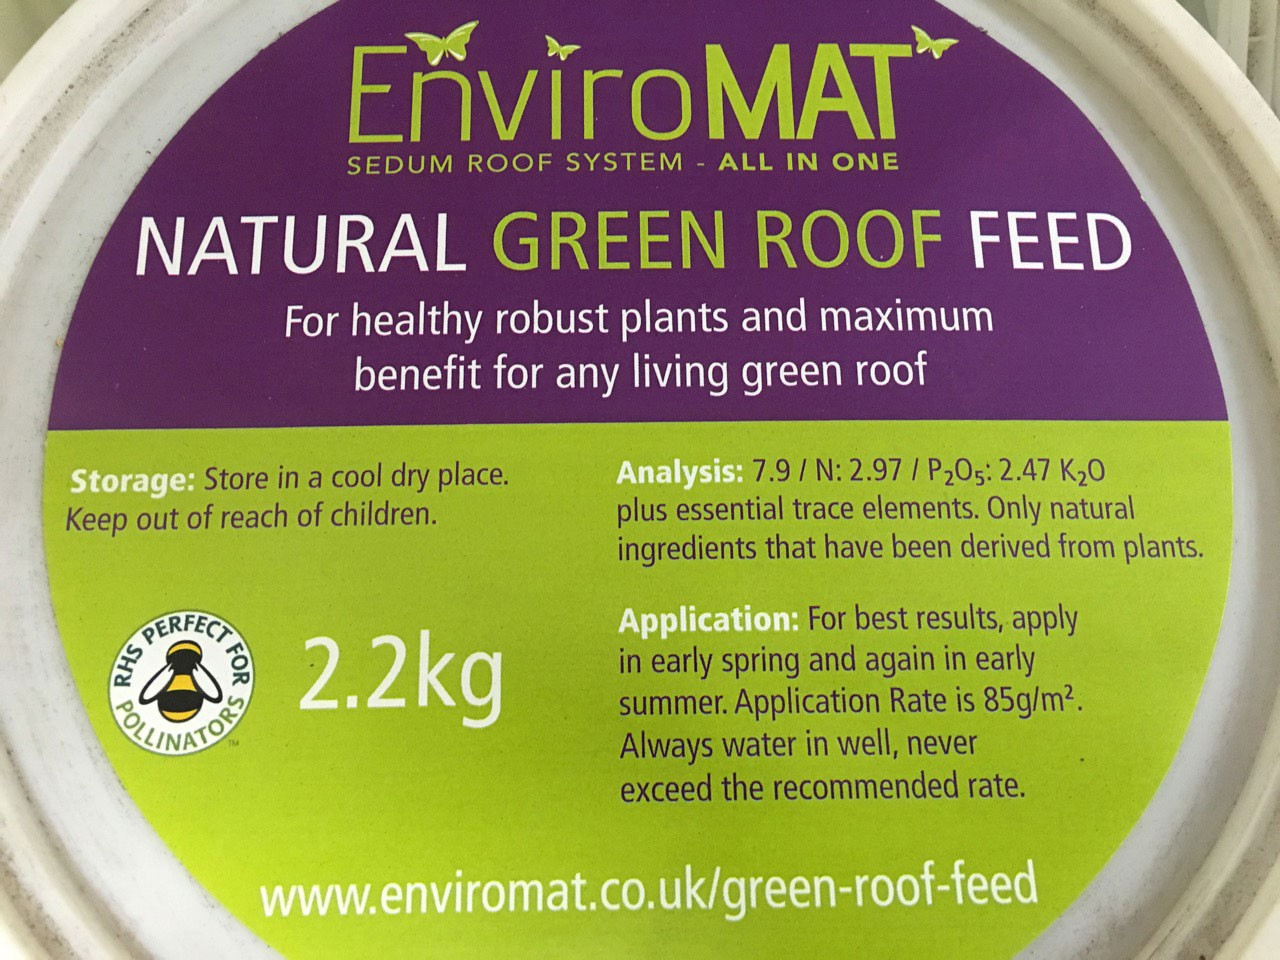 Enviromat Natural Green Roof Feed